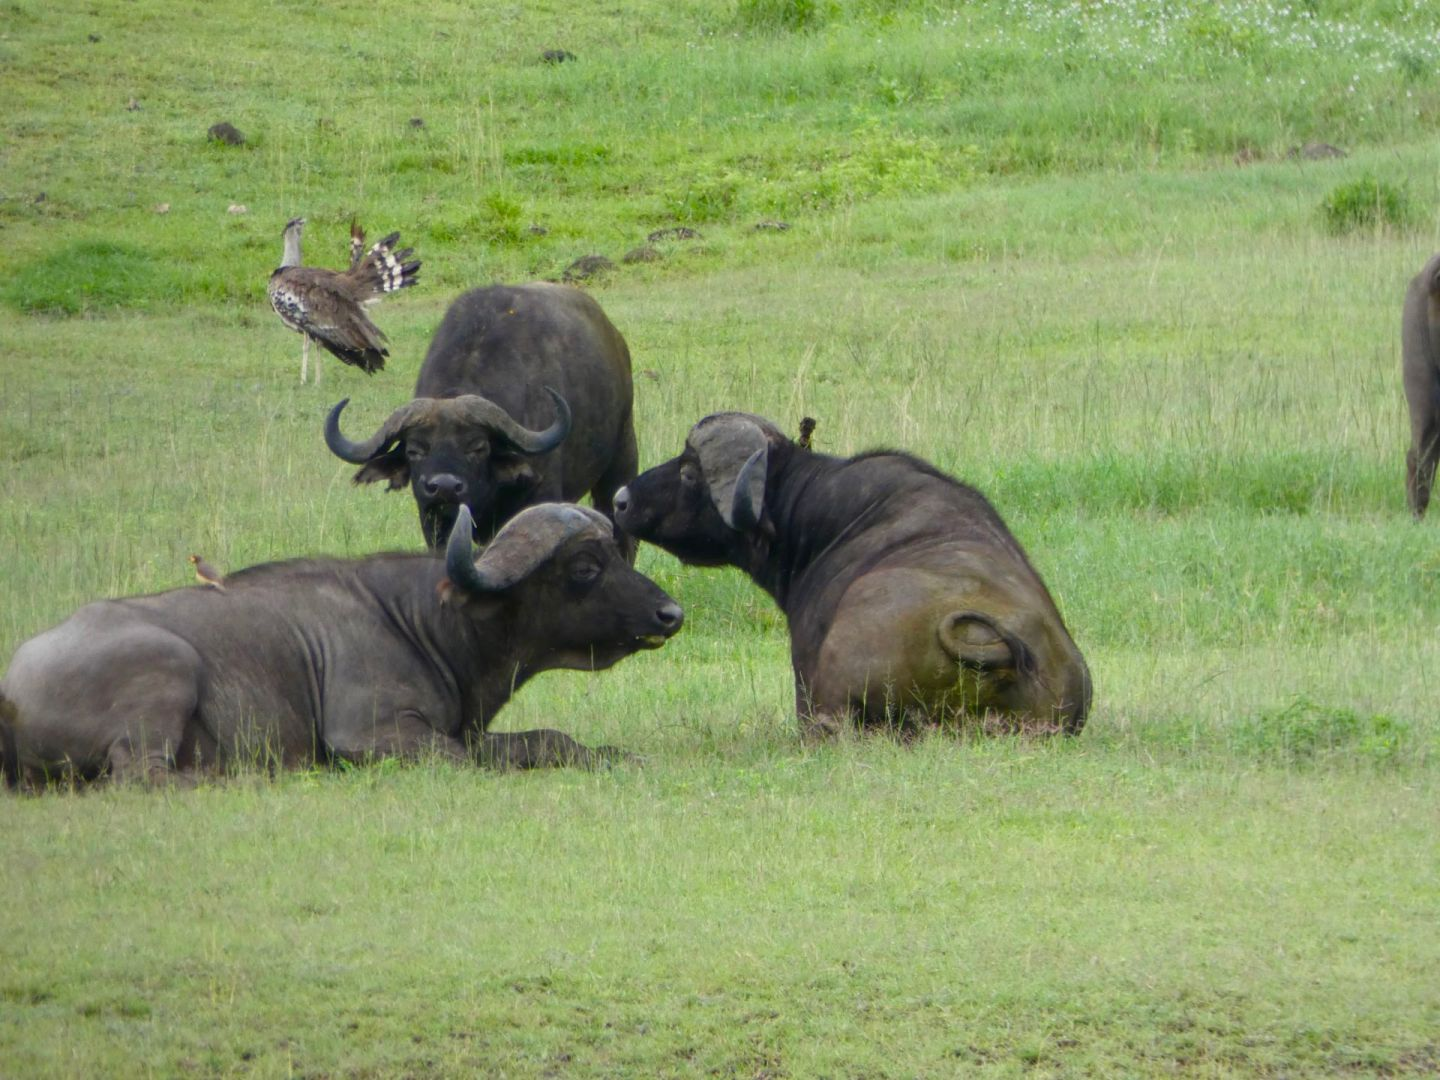 Buffaloes in Ngorongoro Crater